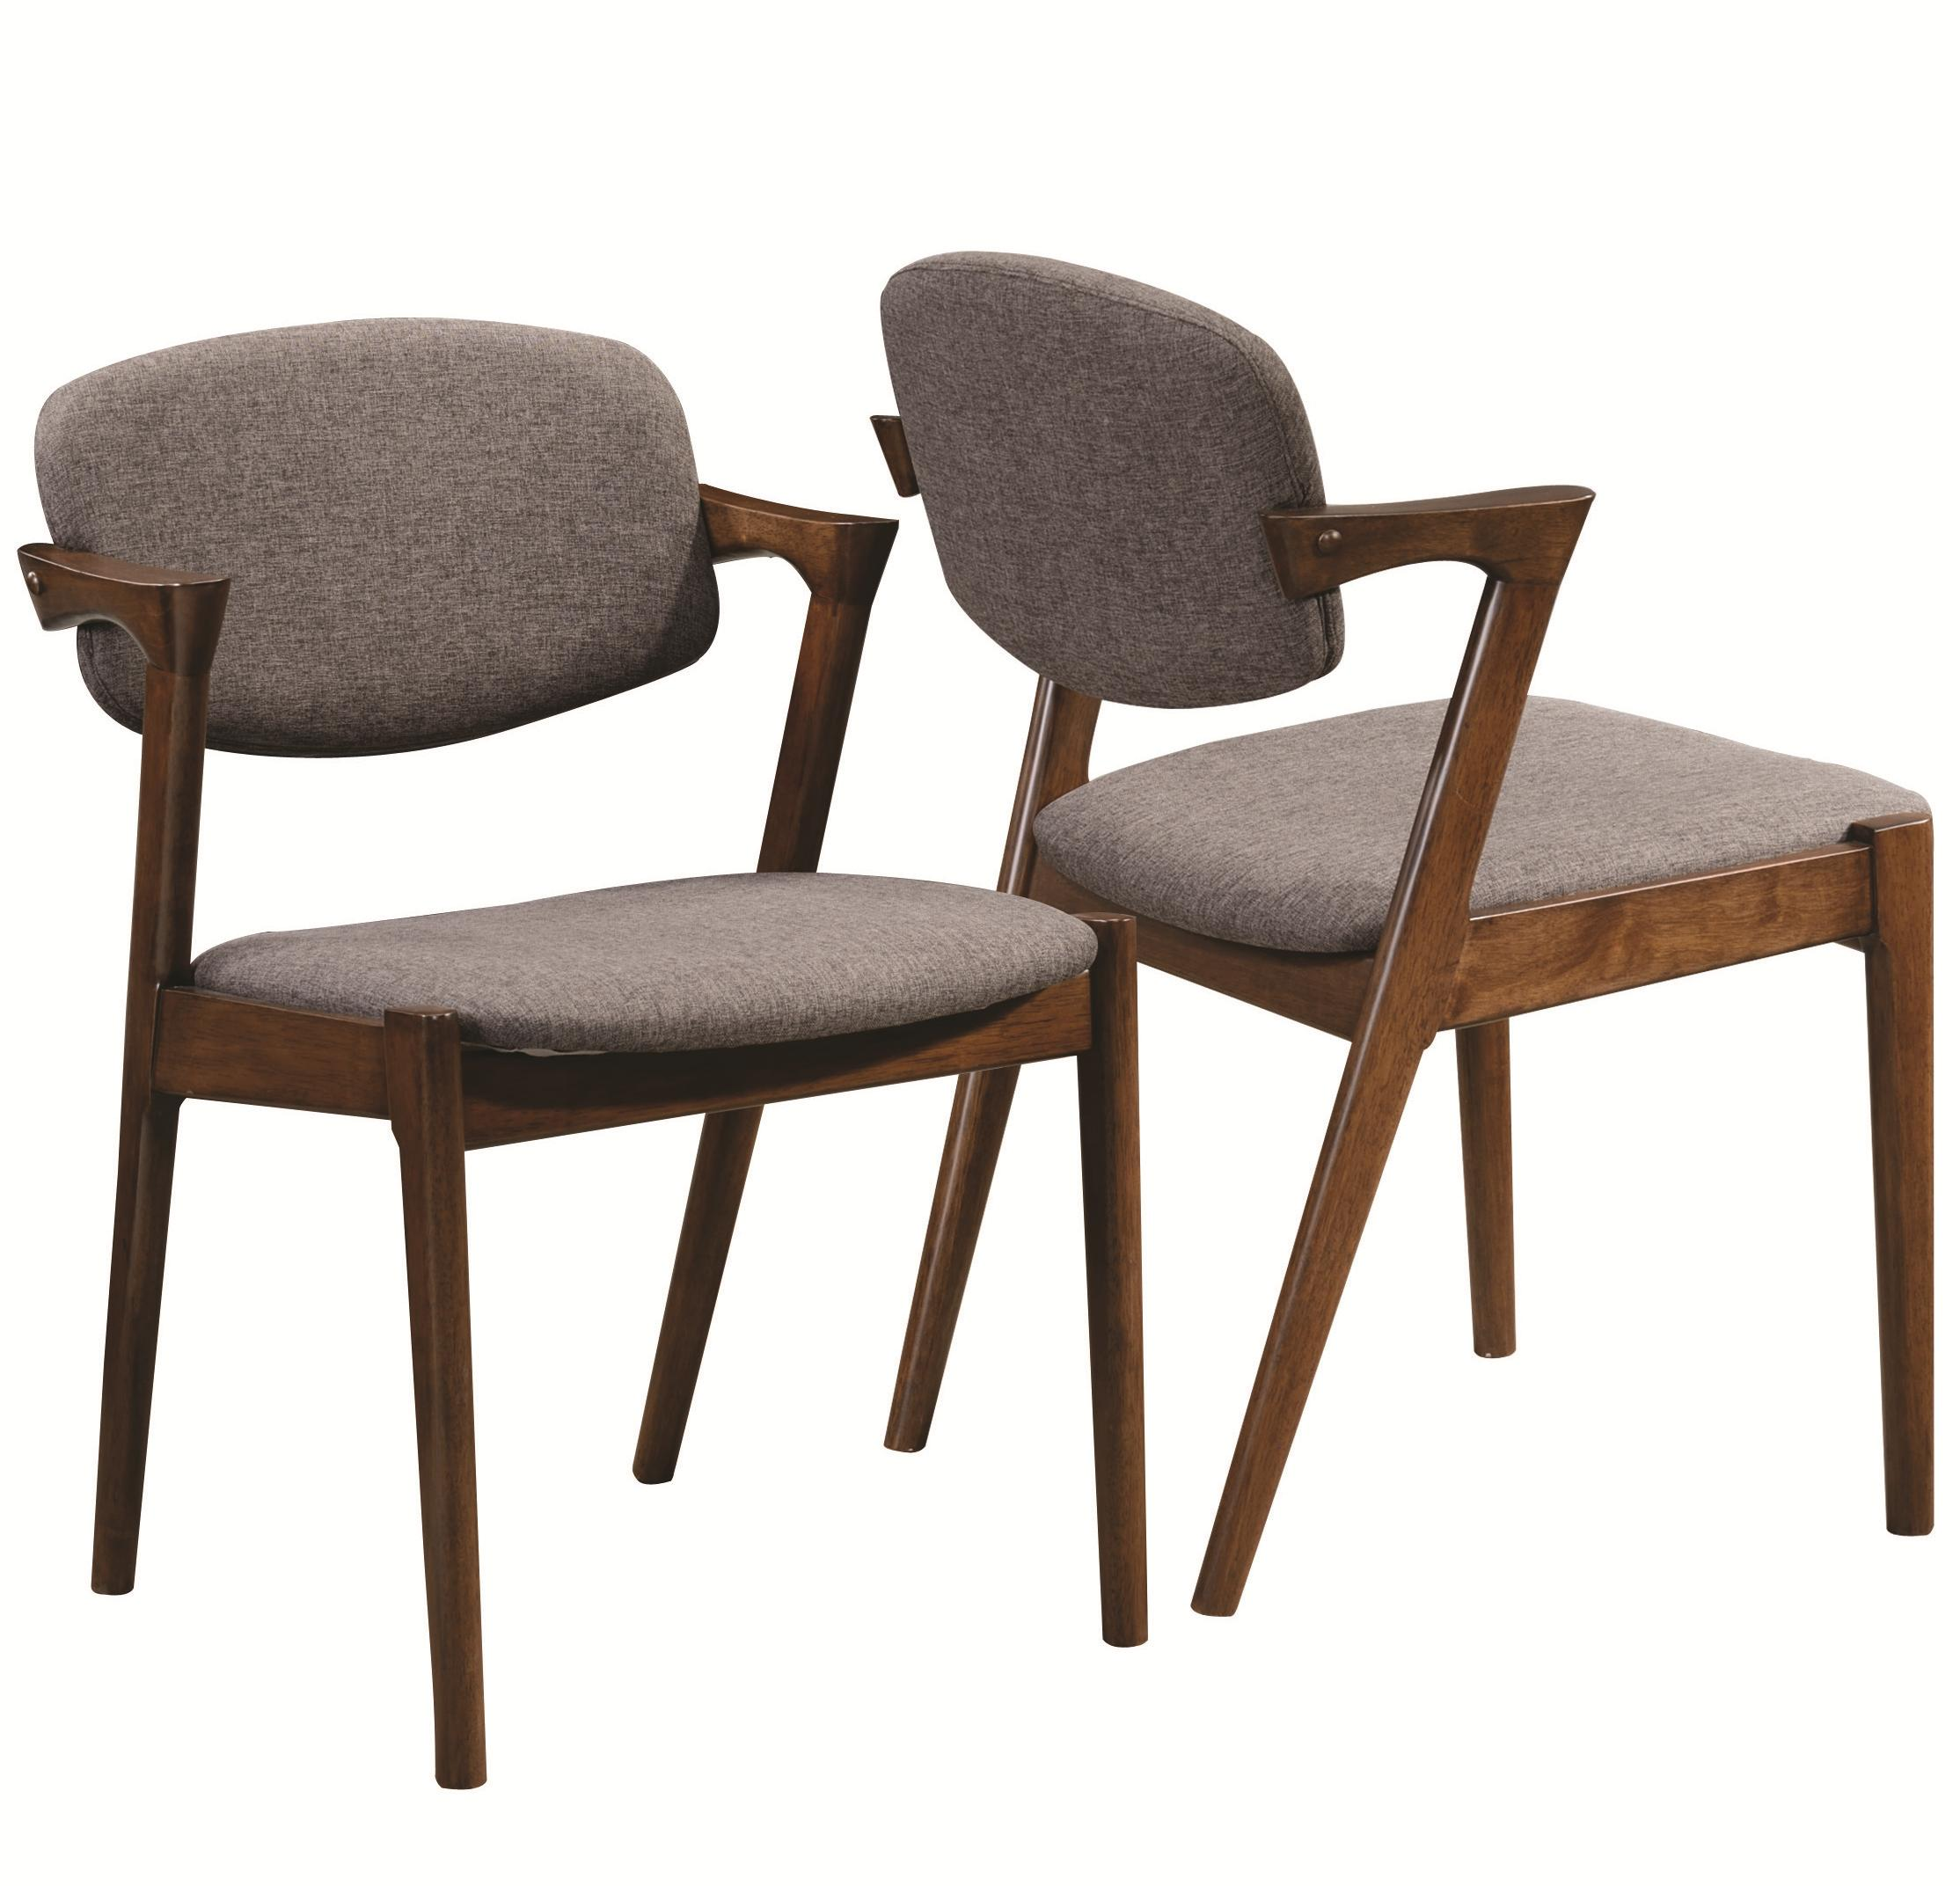 Coaster malone 105352 mid century modern dining side chair for Contemporary dining chairs with arms